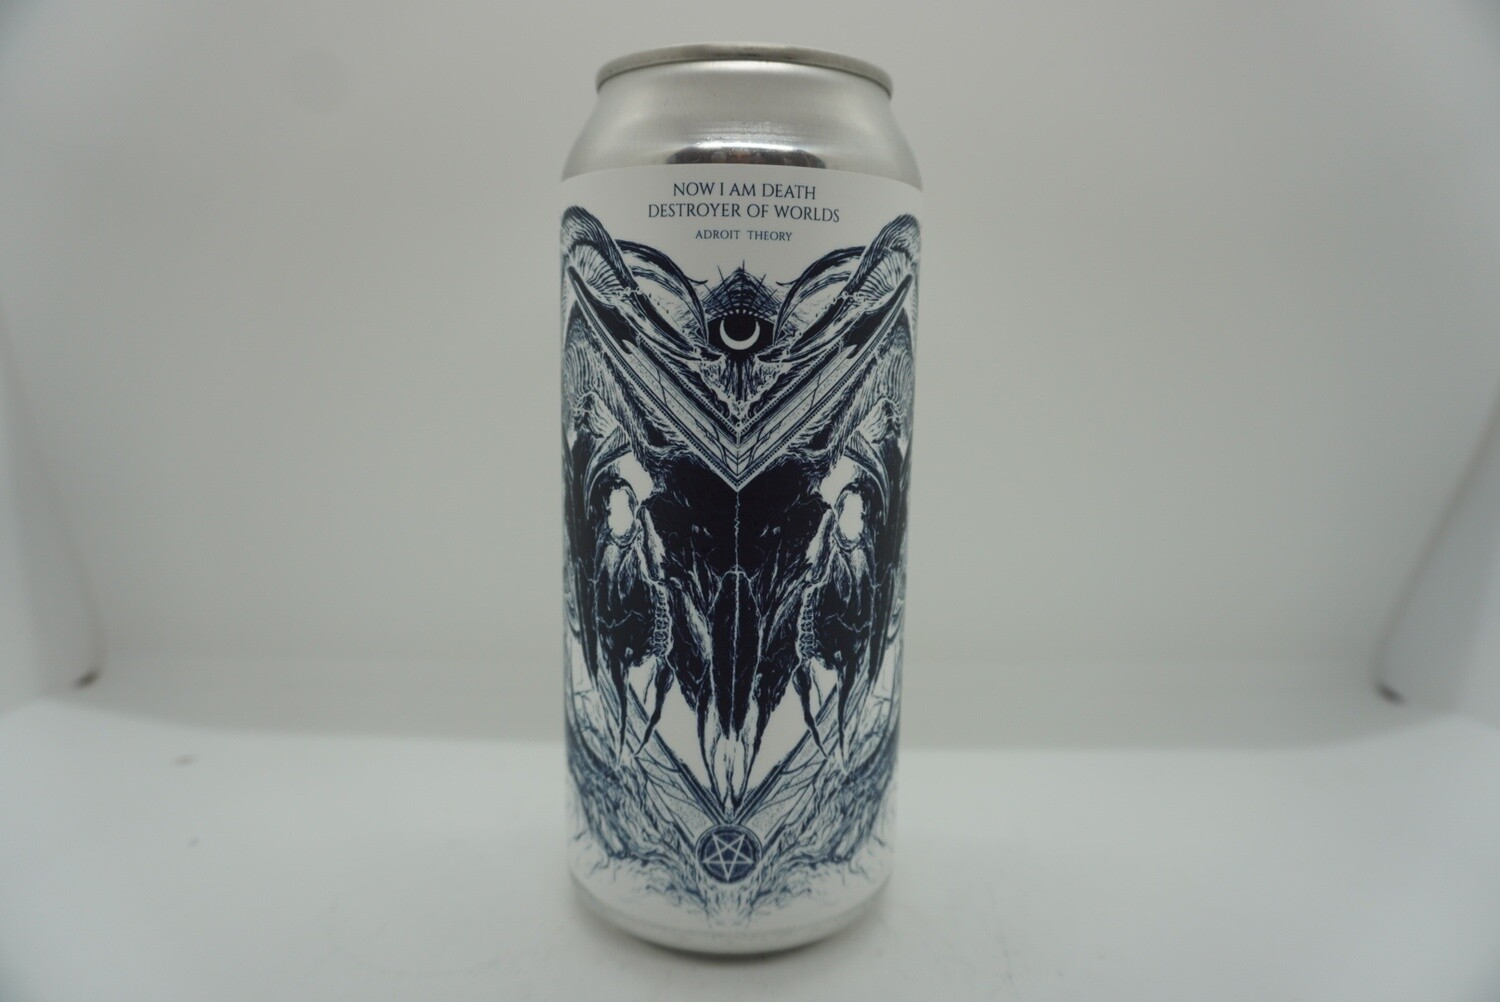 Adroit Theory - Now I Am Death, Destroyer of Worlds - IPA - 10% ABV - 16oz Can